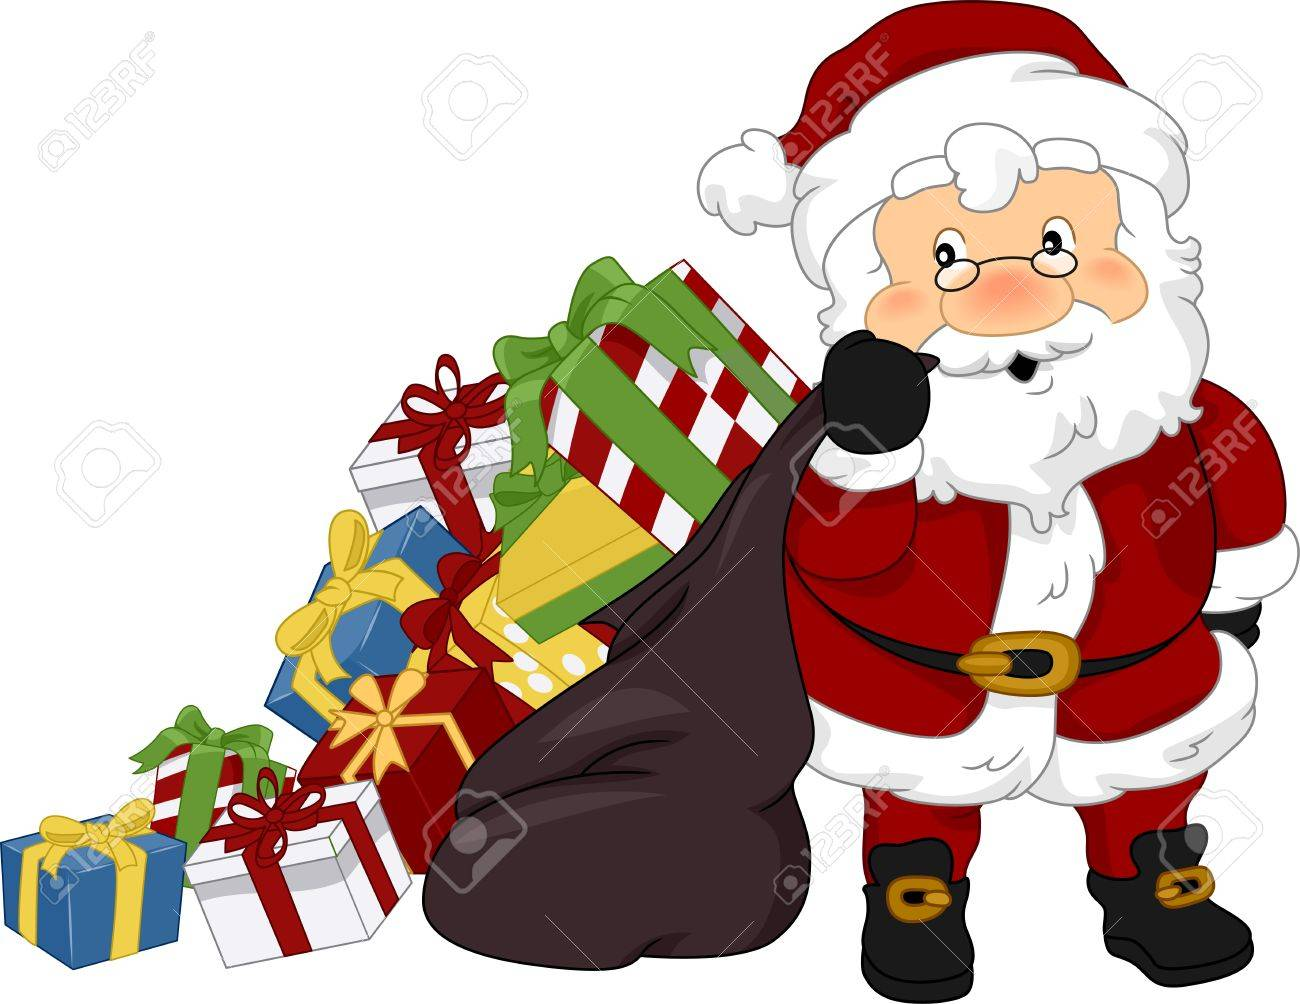 santa claus FB avatar, photos, wallpaper christmas merry xmas 2018